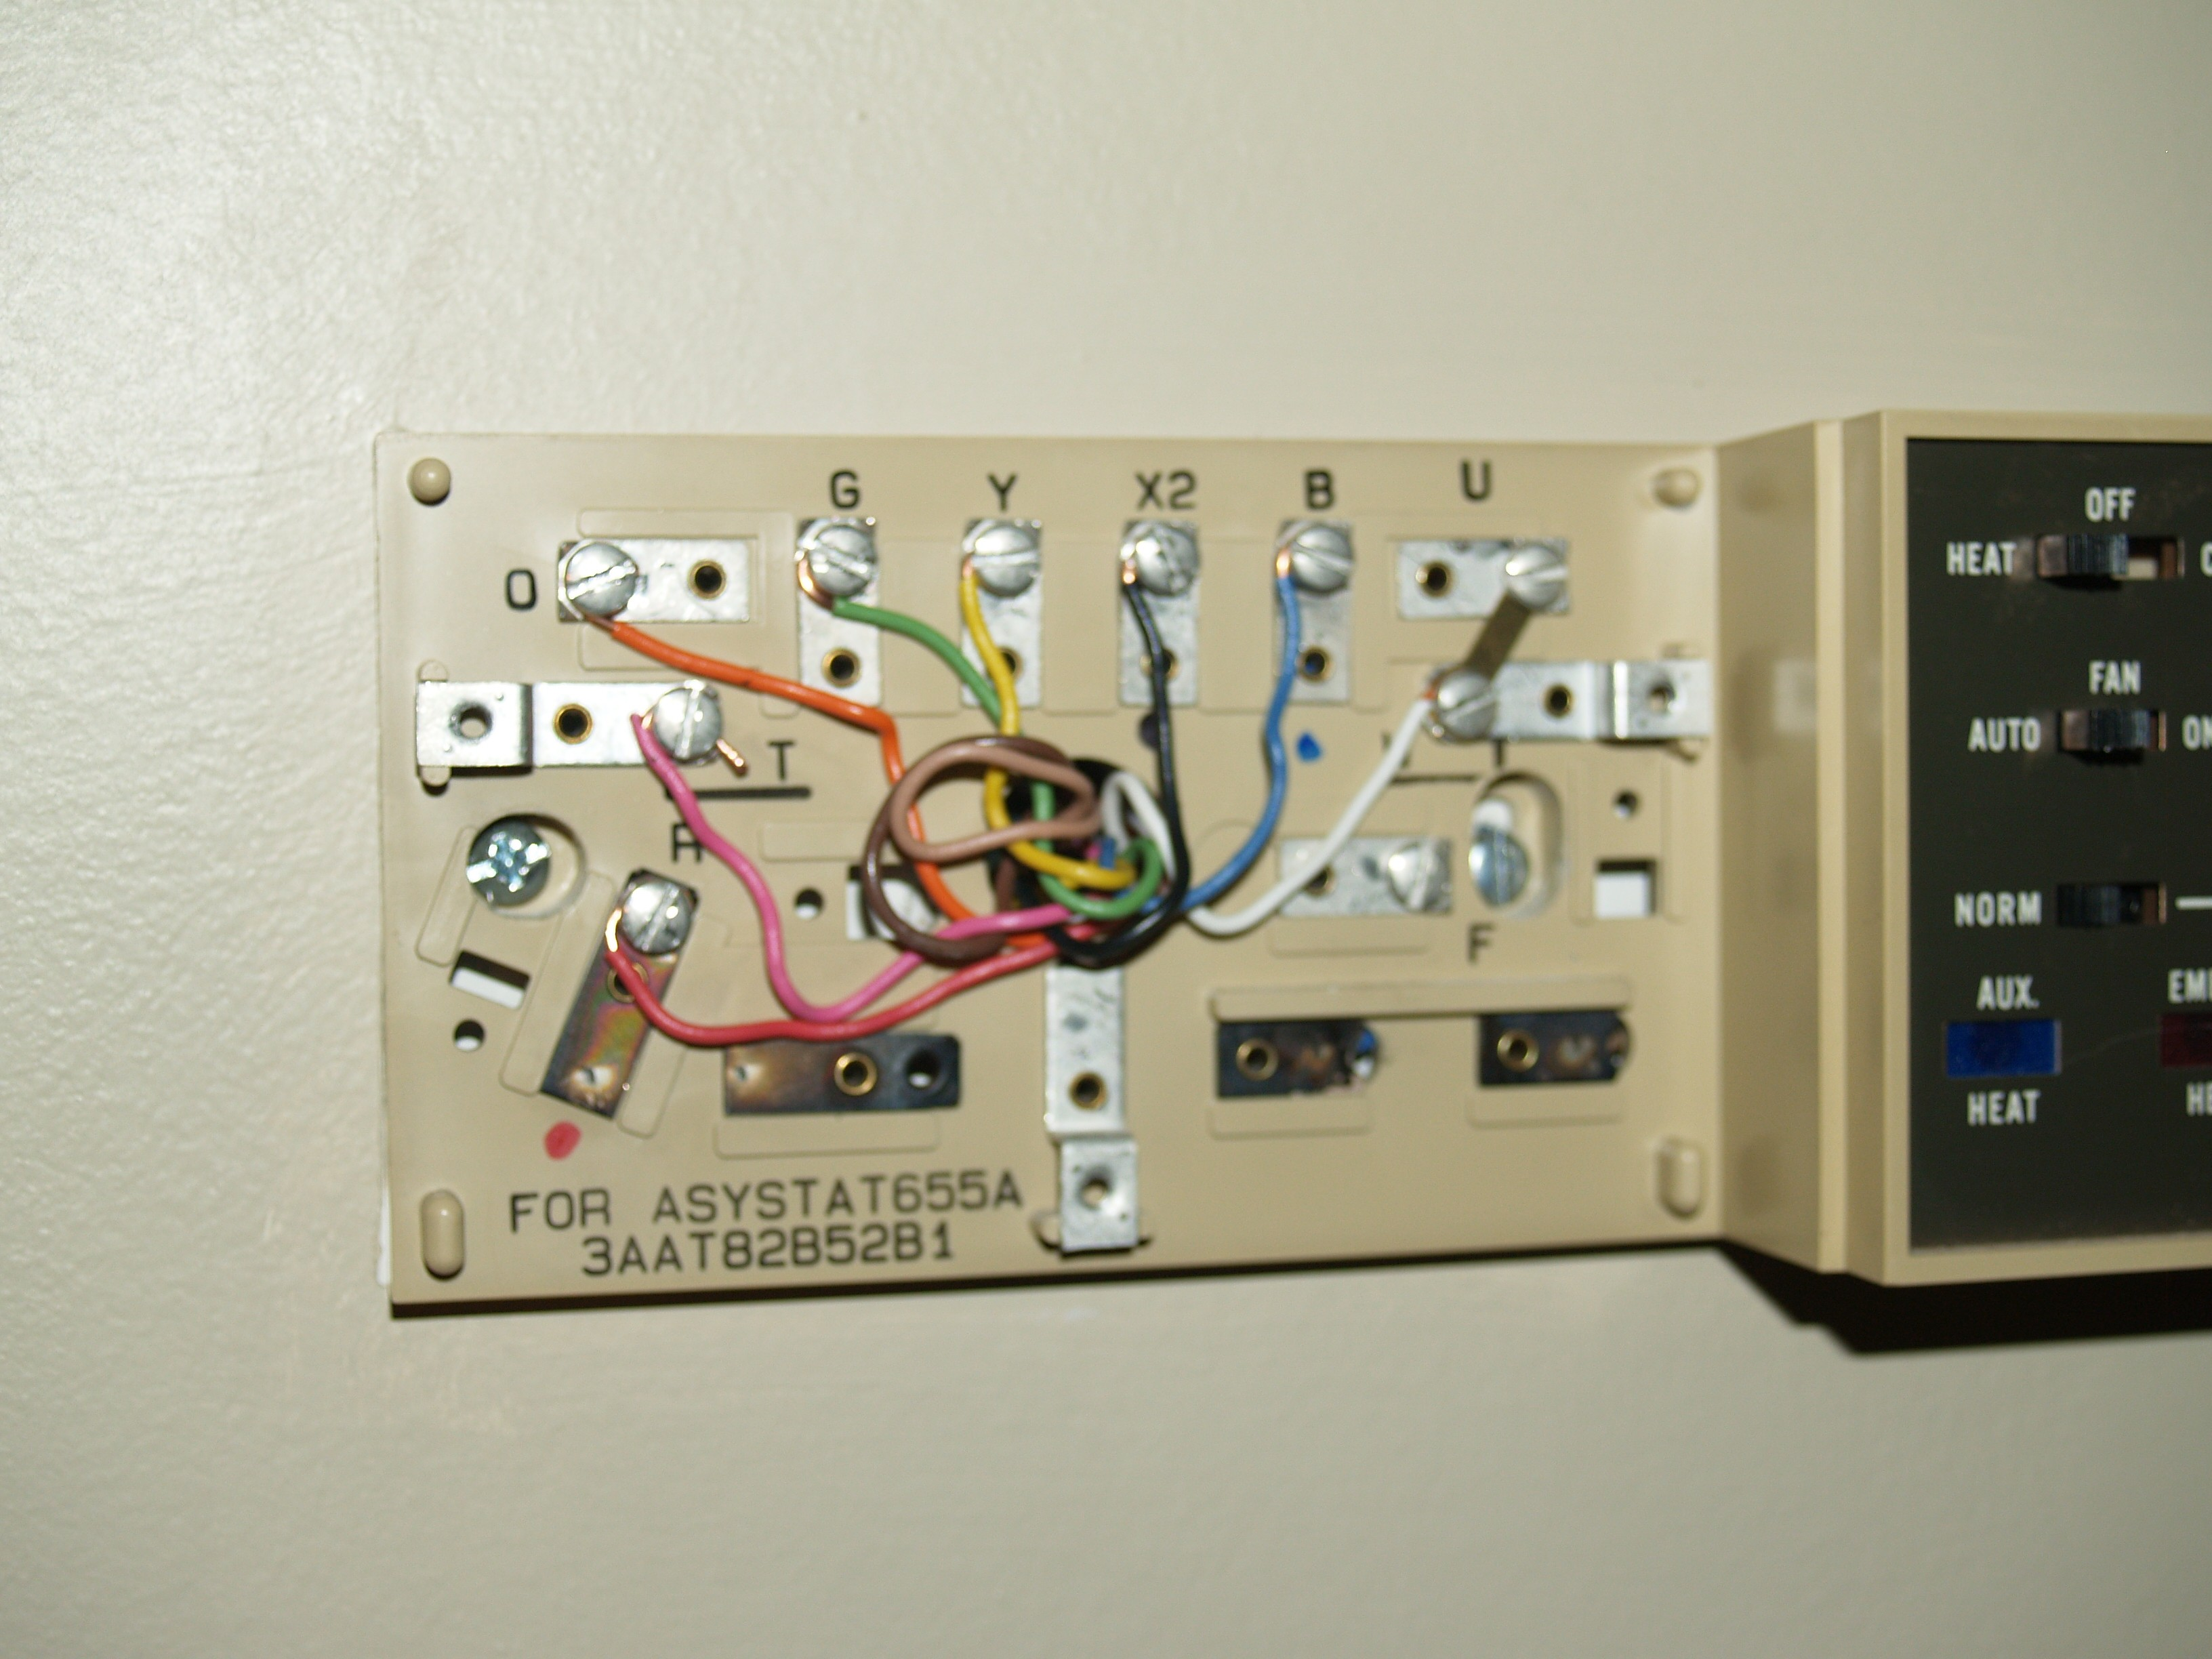 2013 01 20_021201_p1191518 i have a honeywell thomstat asystat 655a and i want to replace it weathertron thermostat wiring diagram at nearapp.co